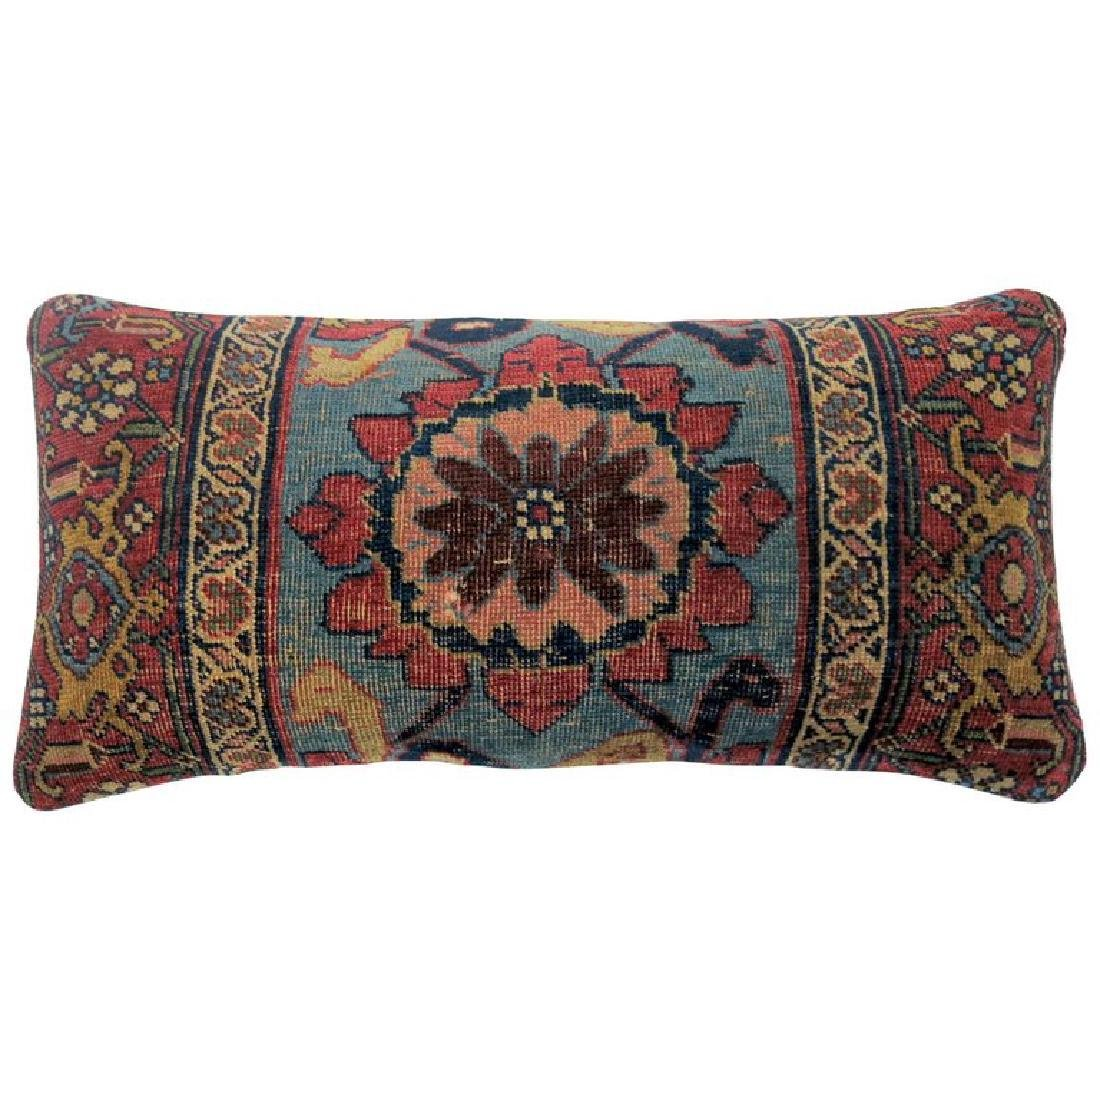 Bidjar Persian Antique Rug Pillow 1.3x2.5